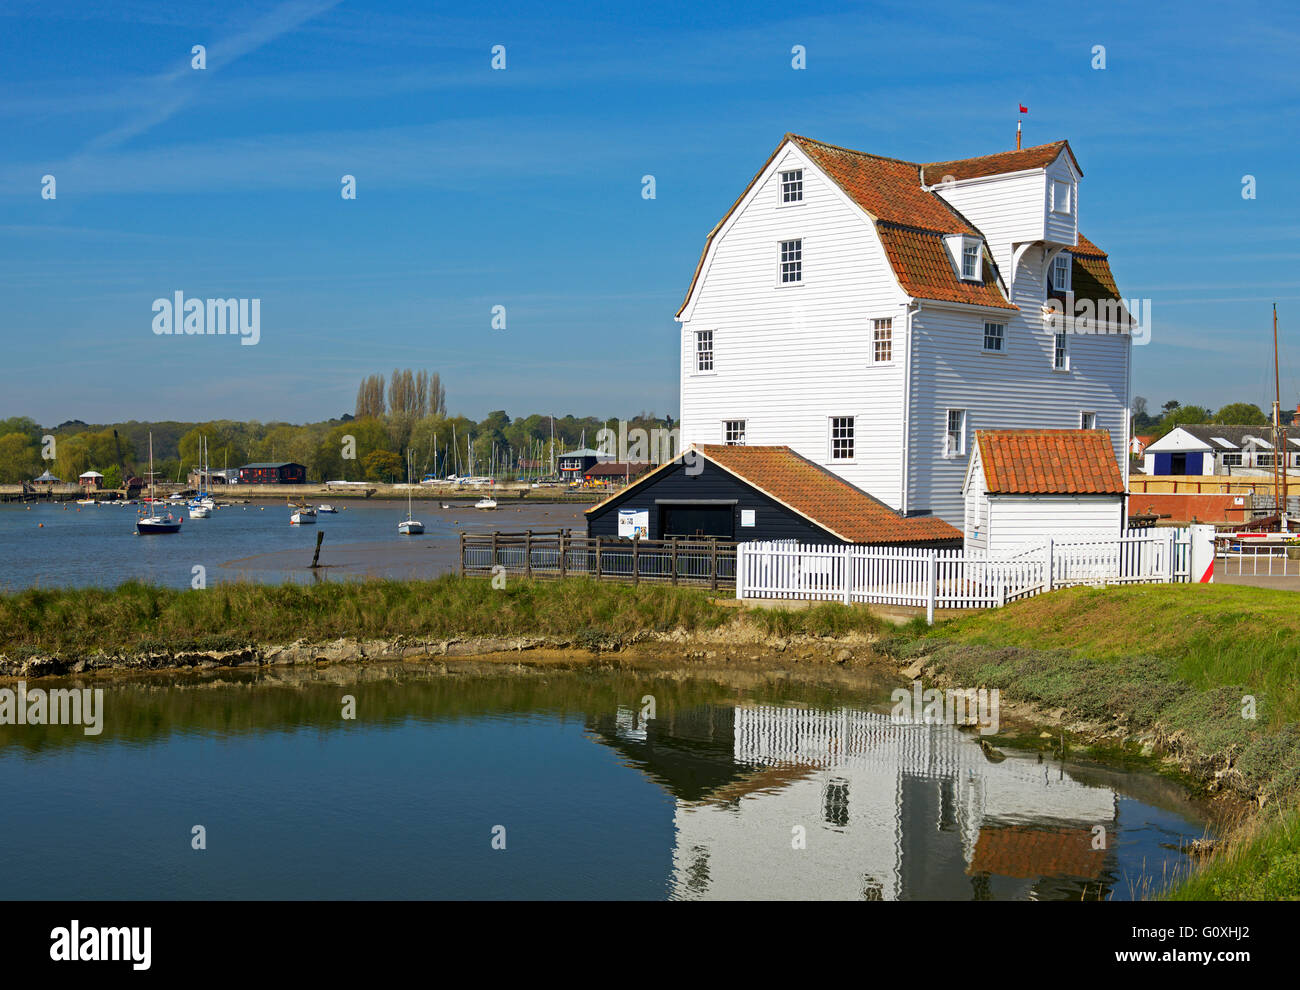 the-tide-mill-on-the-quayside-woodbridge-suffolk-england-uk-G0XHJ2.jpg